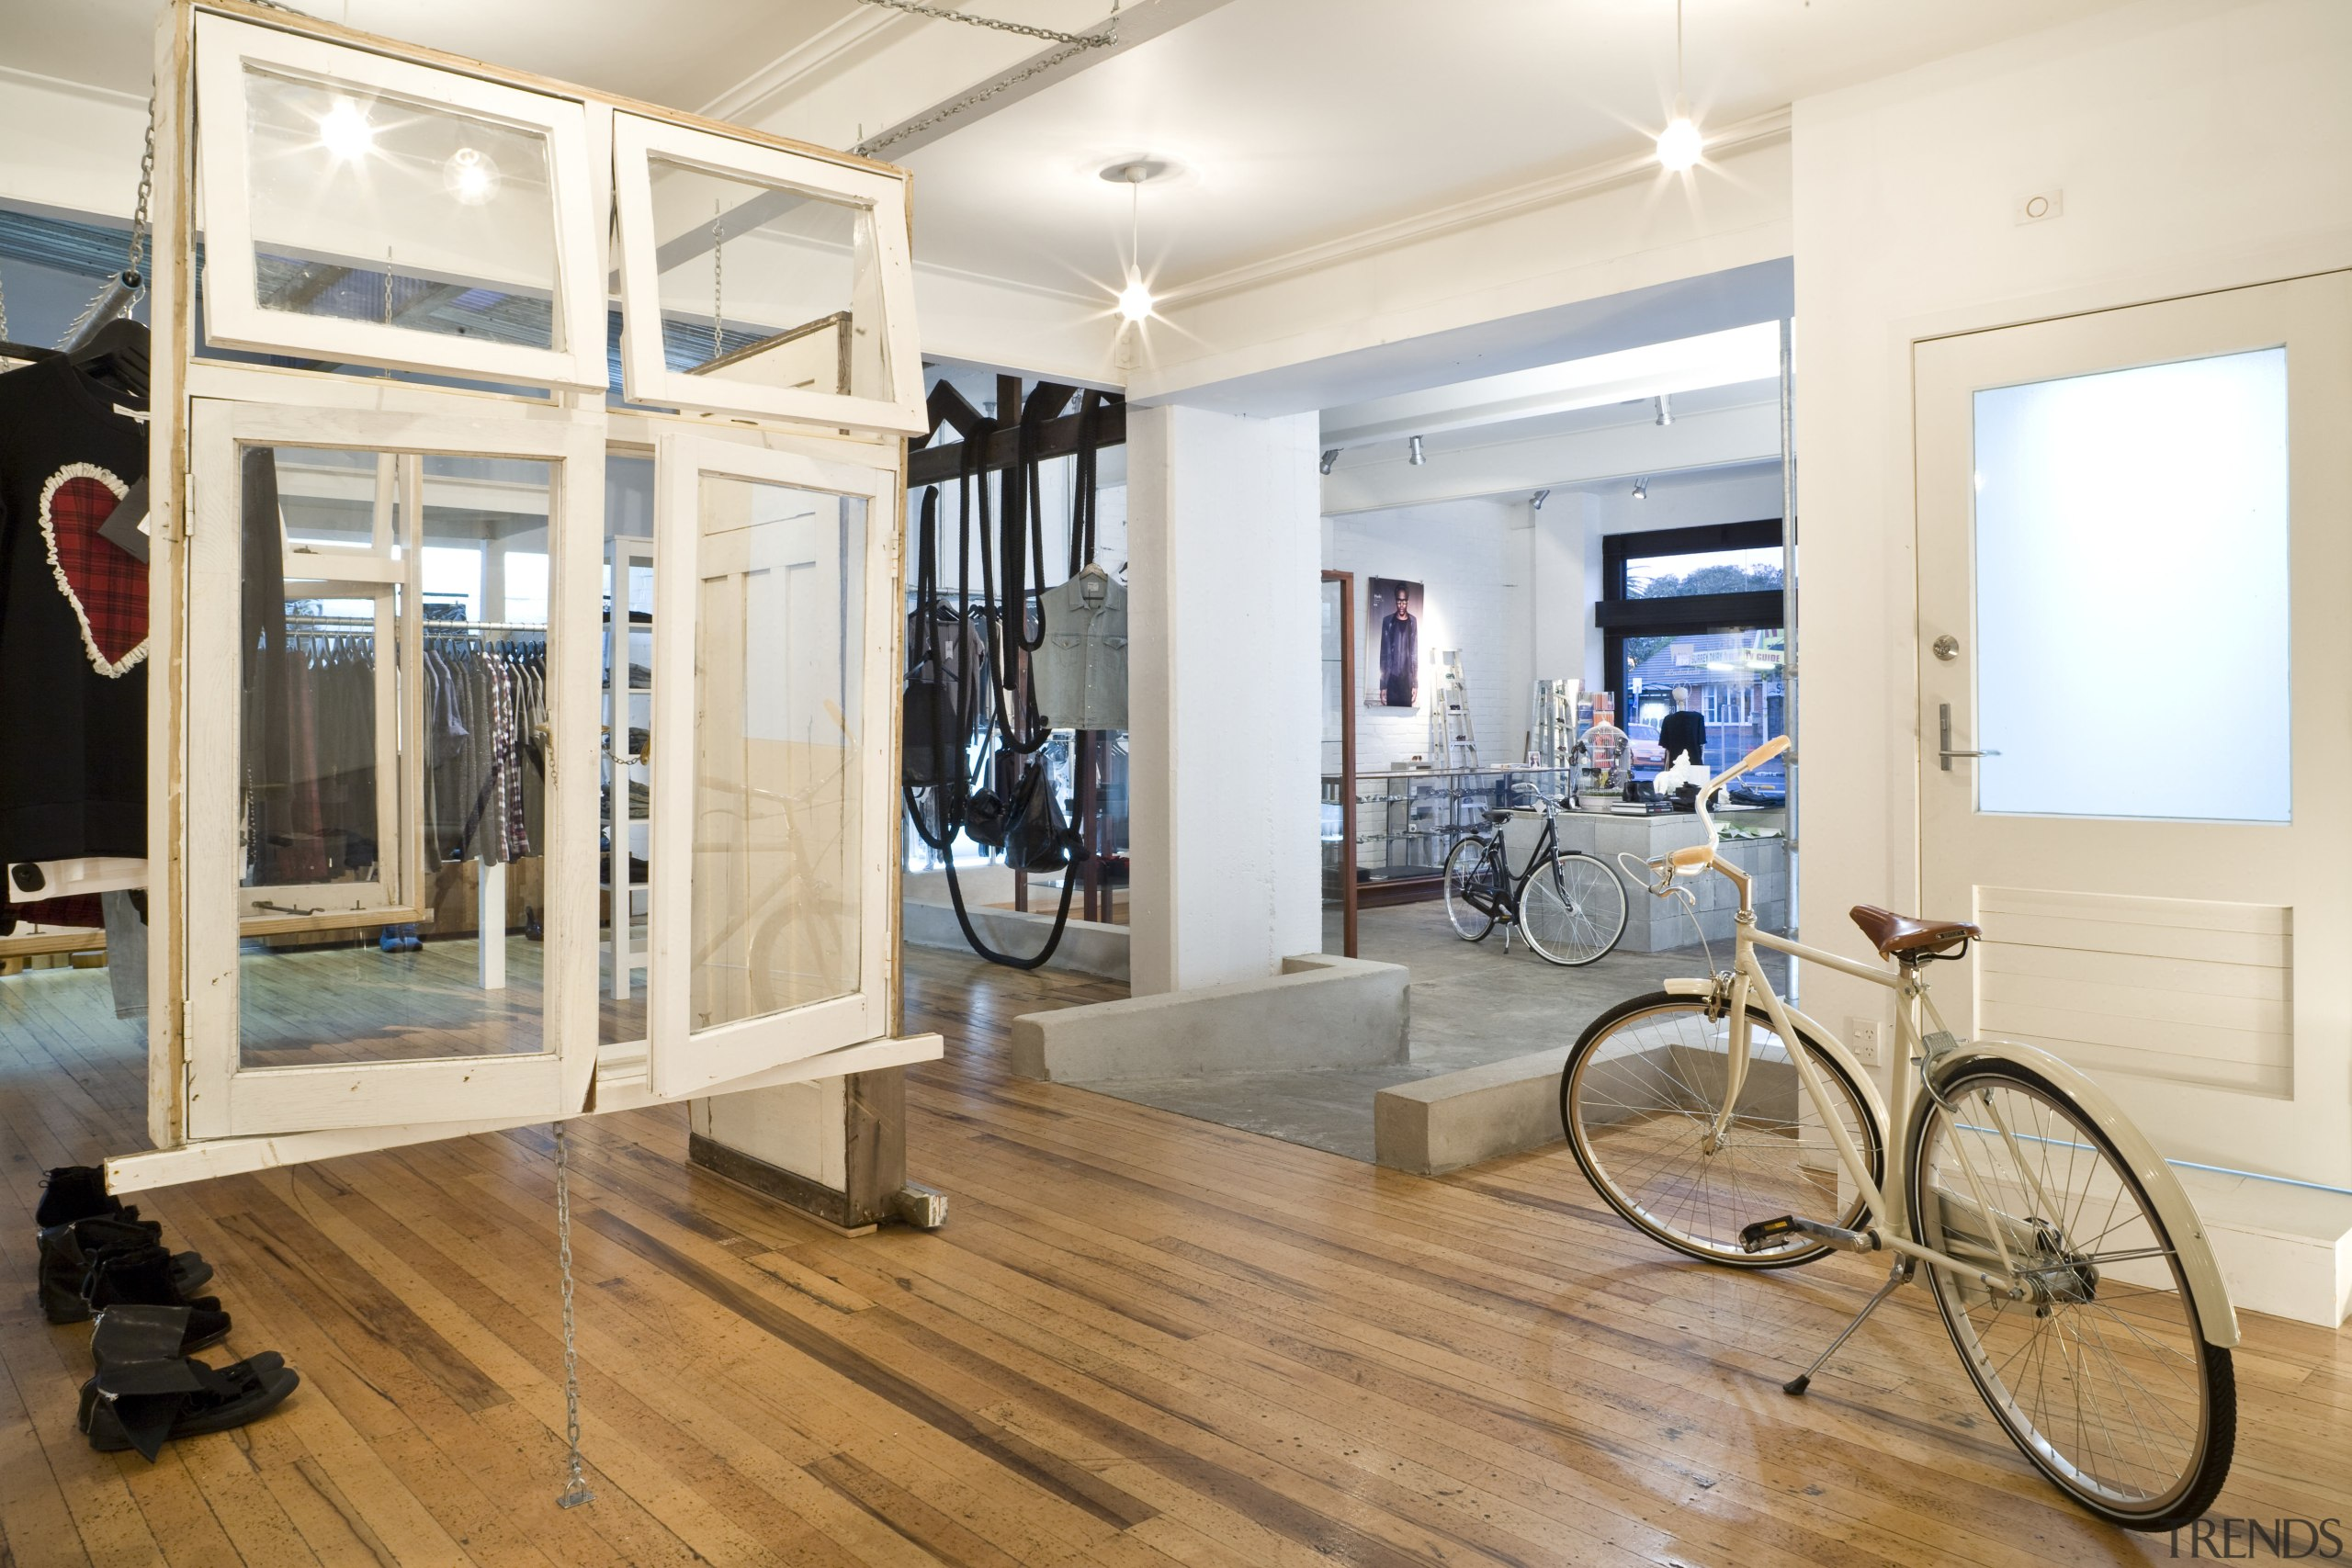 Interior view of the clothing displays at the floor, flooring, interior design, room, structure, wood, wood flooring, white